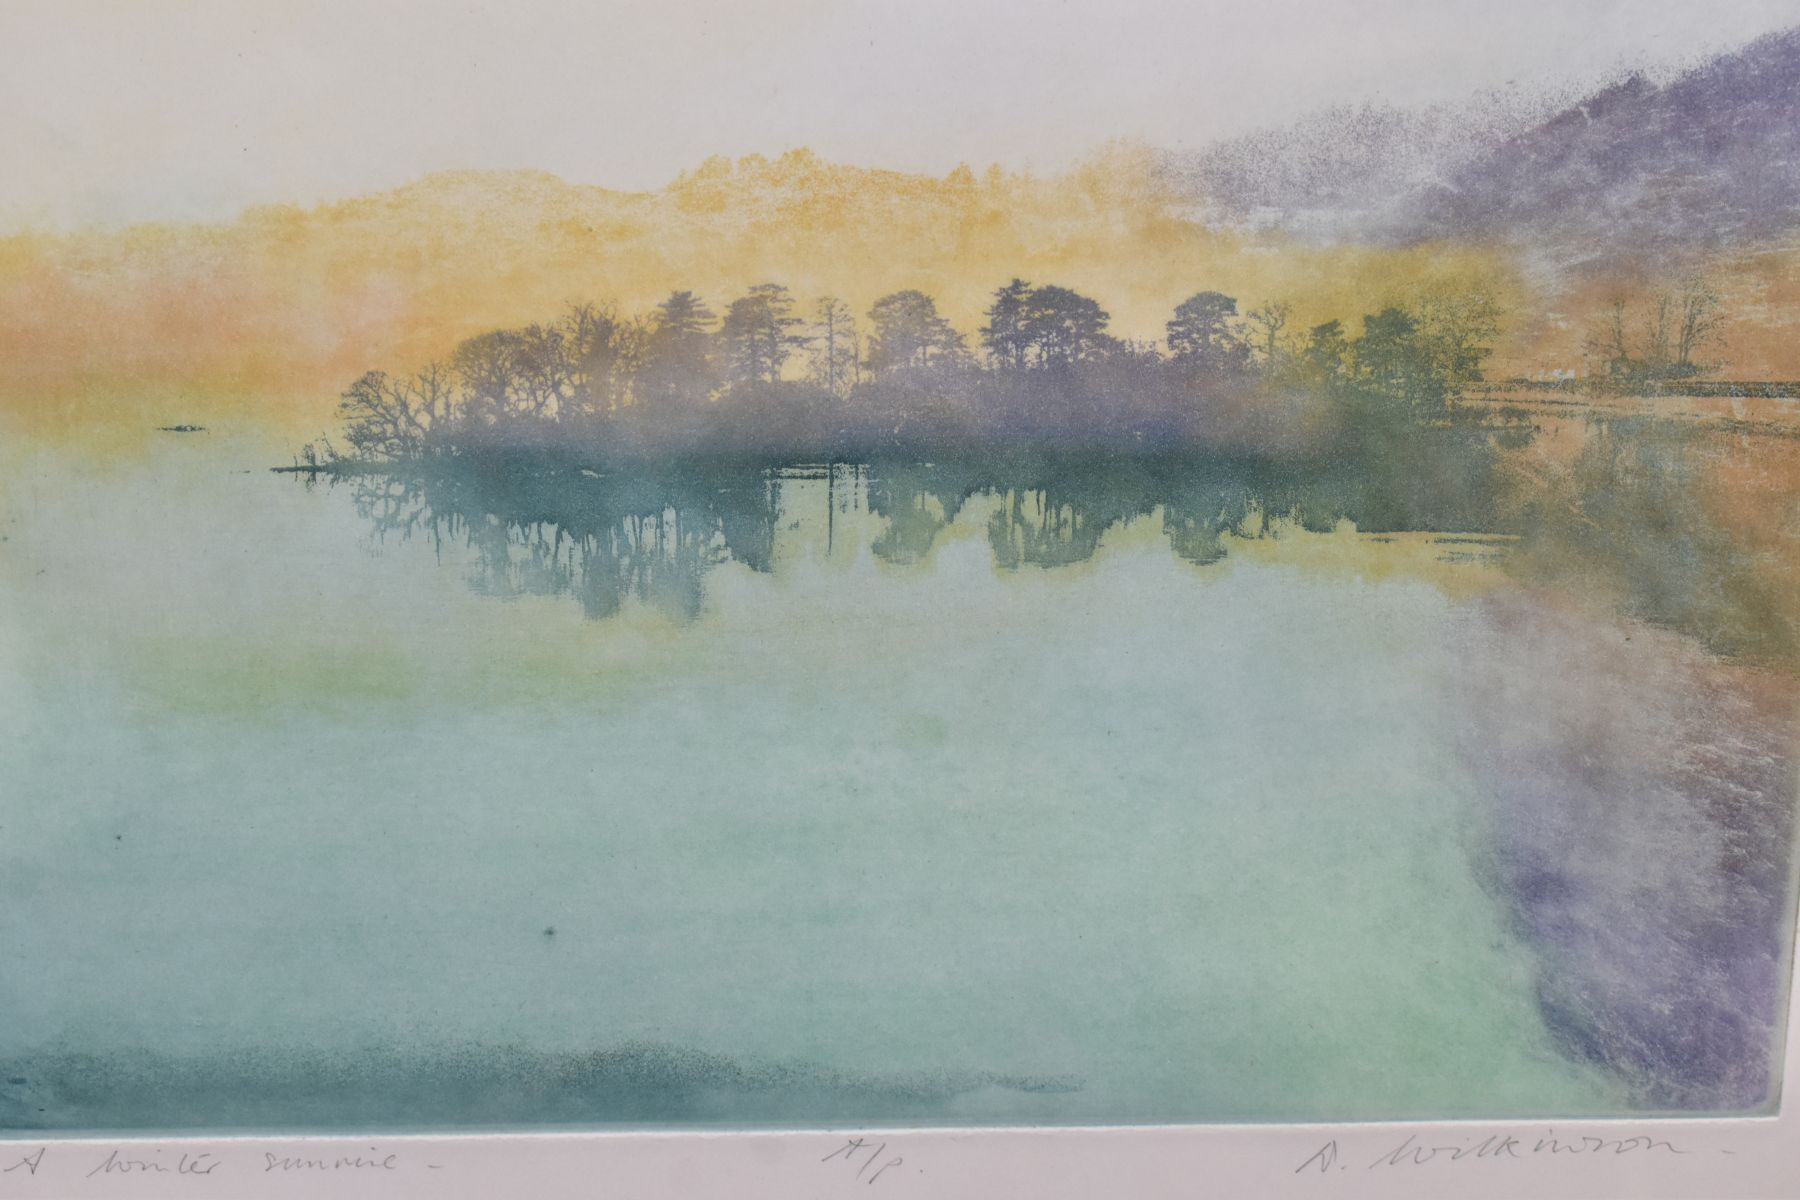 DONALD WILKINSON (BRITISH 1937) two artist proof aquatint etchings of Cumbrian landscapes, 'A Winter - Image 3 of 7